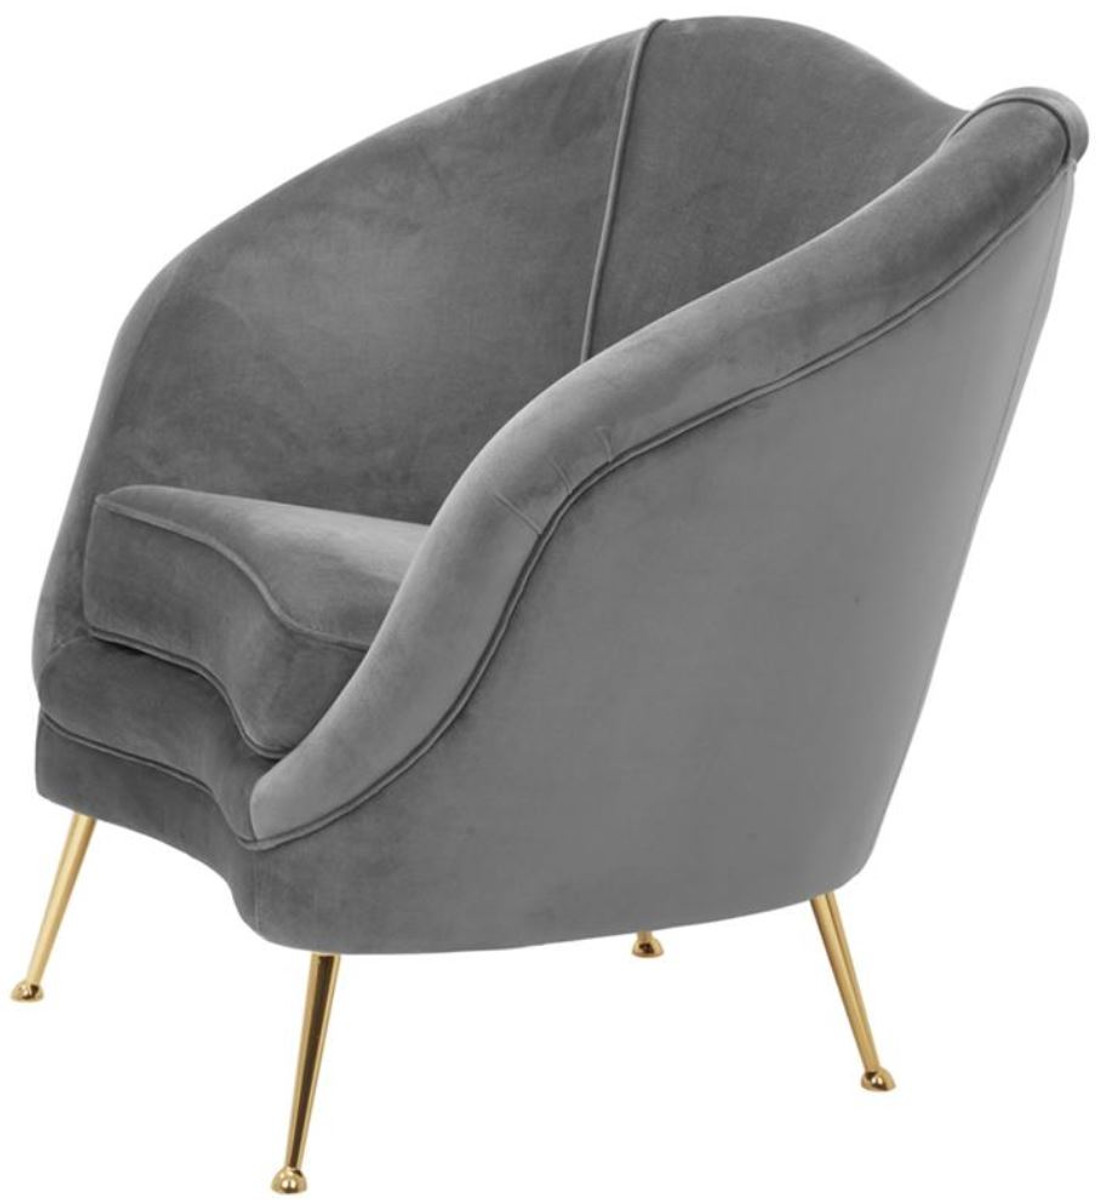 Casa Padrino Luxus Salon Sessel Grau / Messing 85 x 77 x H. 80 cm - Luxus Kollektion 4